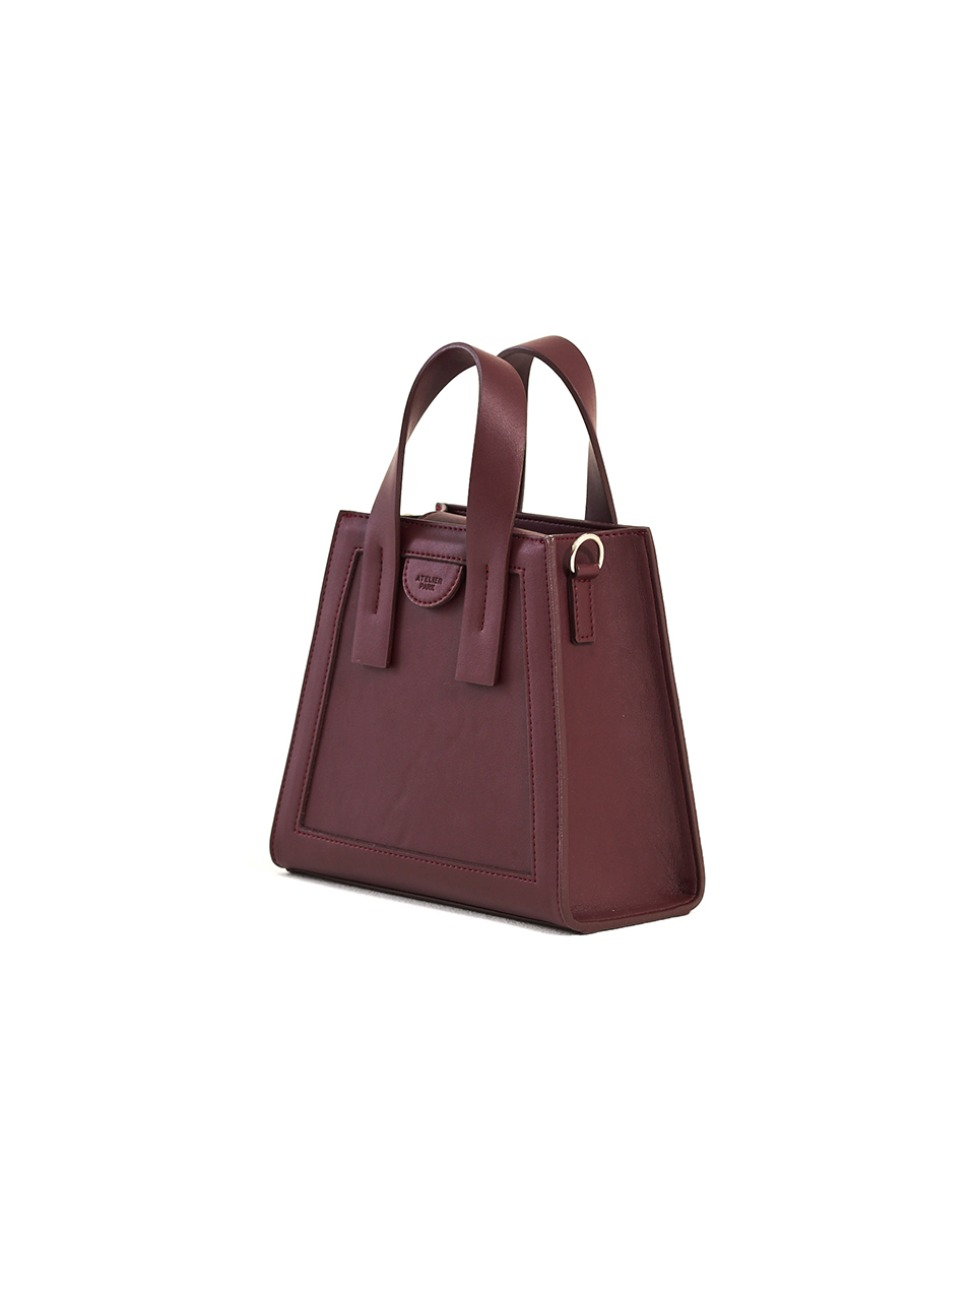 GEO BAG_MINI_BURGUNDY